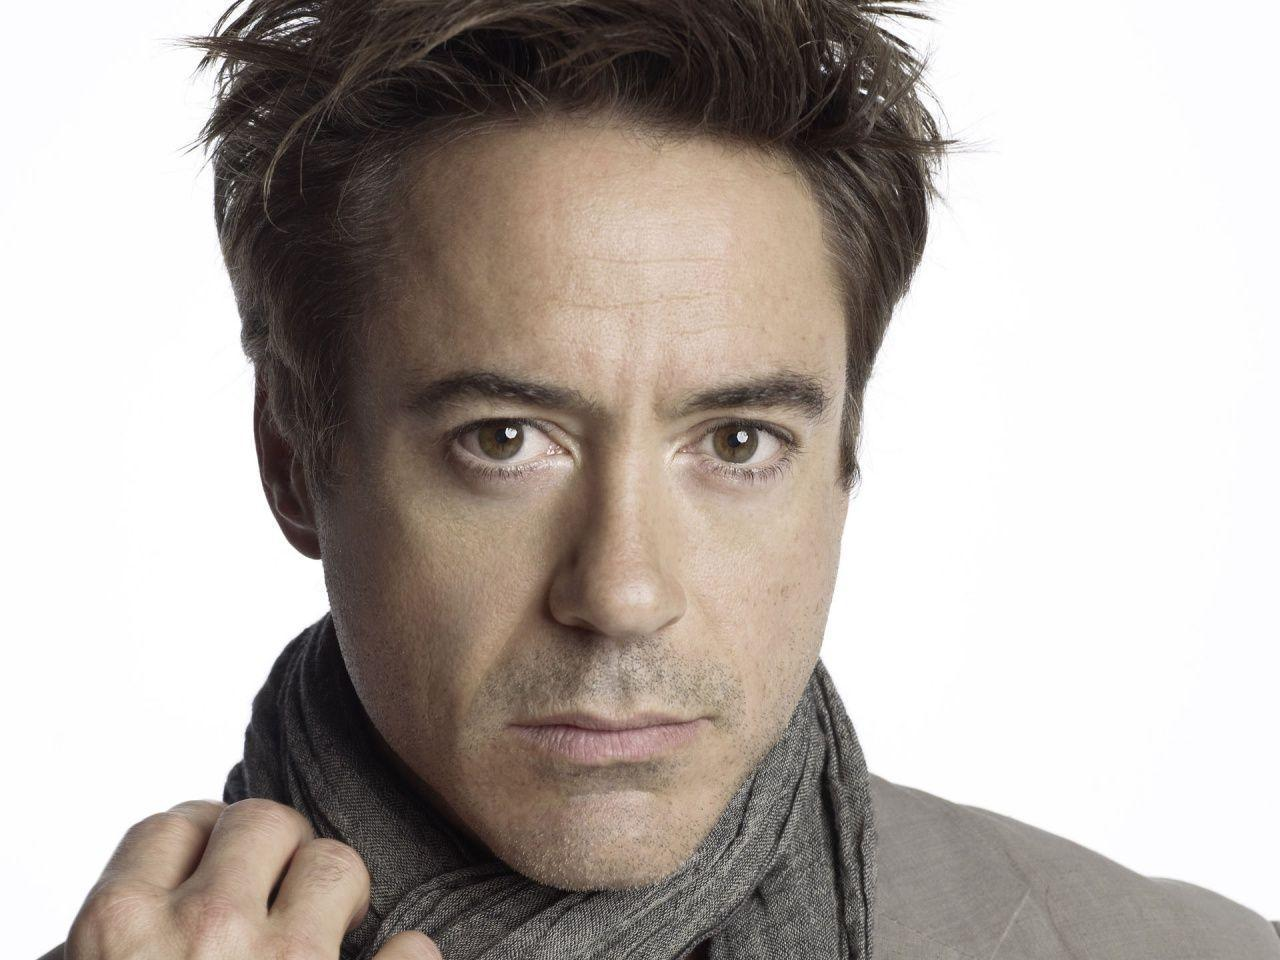 Robert Downey, Jr. Cool Wallpapers 2863 Images | wallgraf.